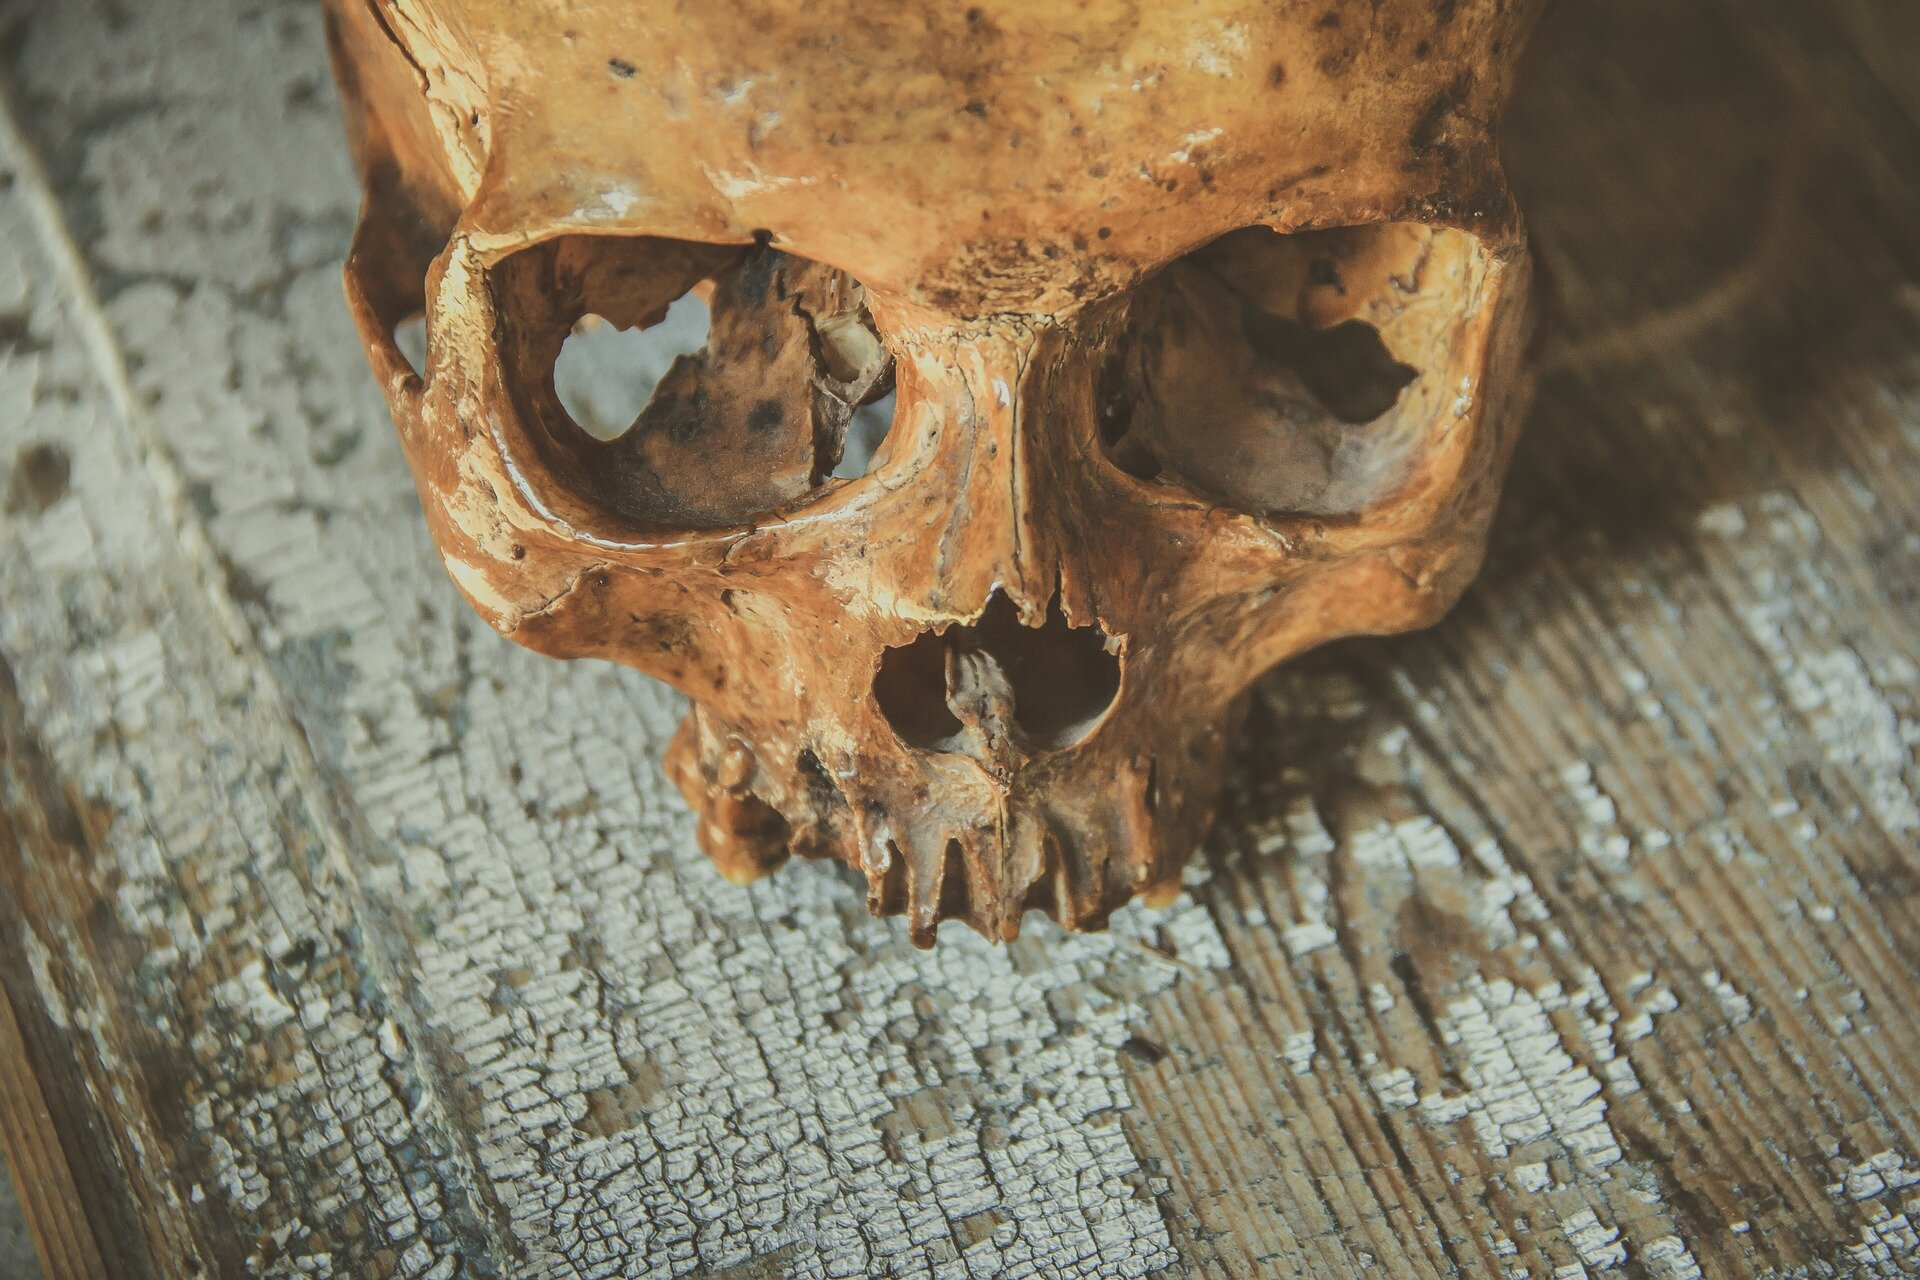 Bone proteomics could reveal how long a corpse has been underwater